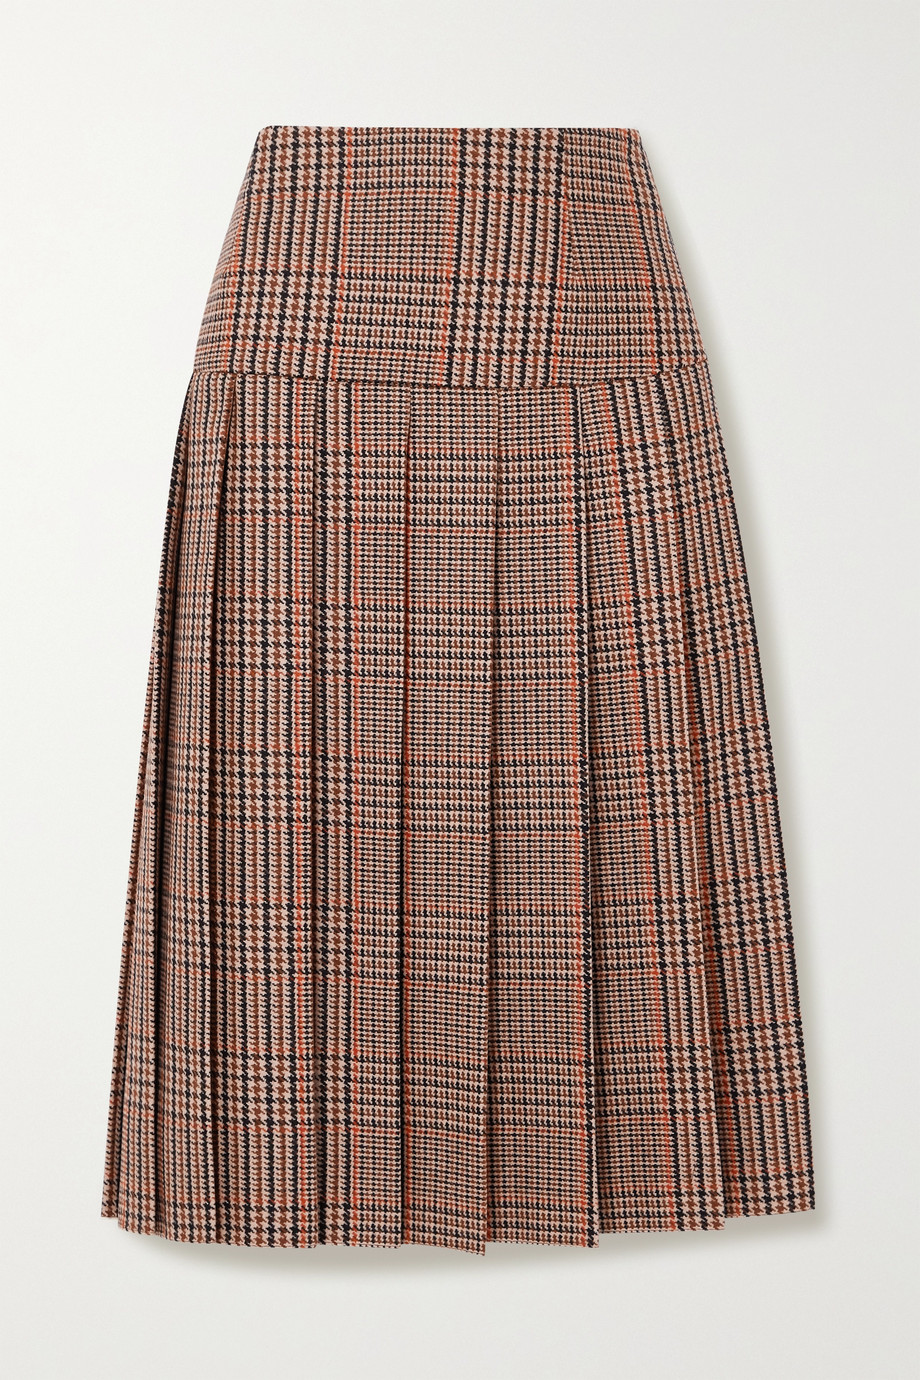 Prada Pleated checked wool and cashmere-blend tweed midi skirt